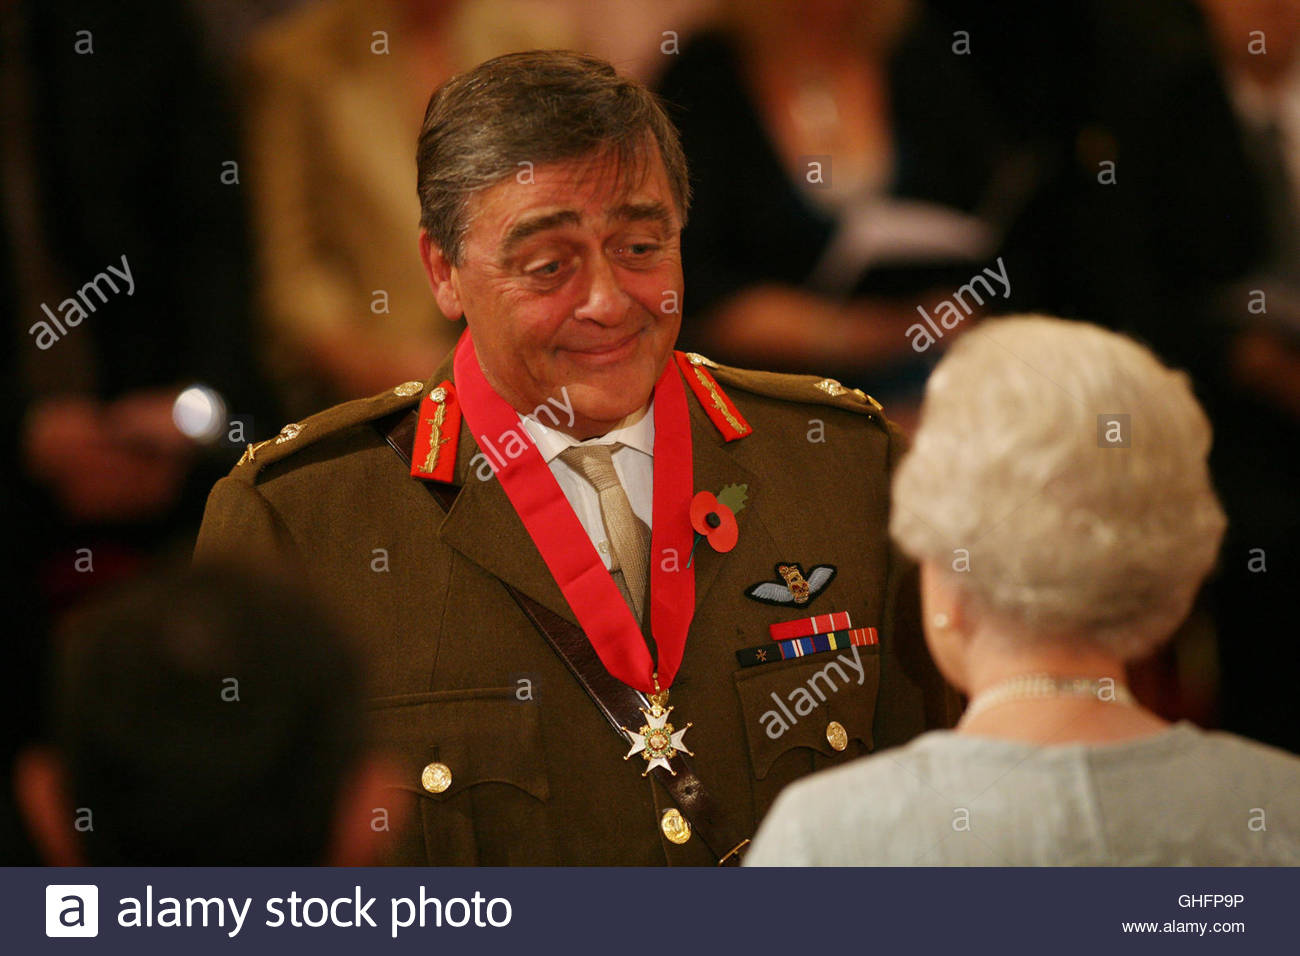 File photo dated 4/11/2008 of Major General The Duke of Westminster is made a Companion of the Order of the Bath - Stock Image